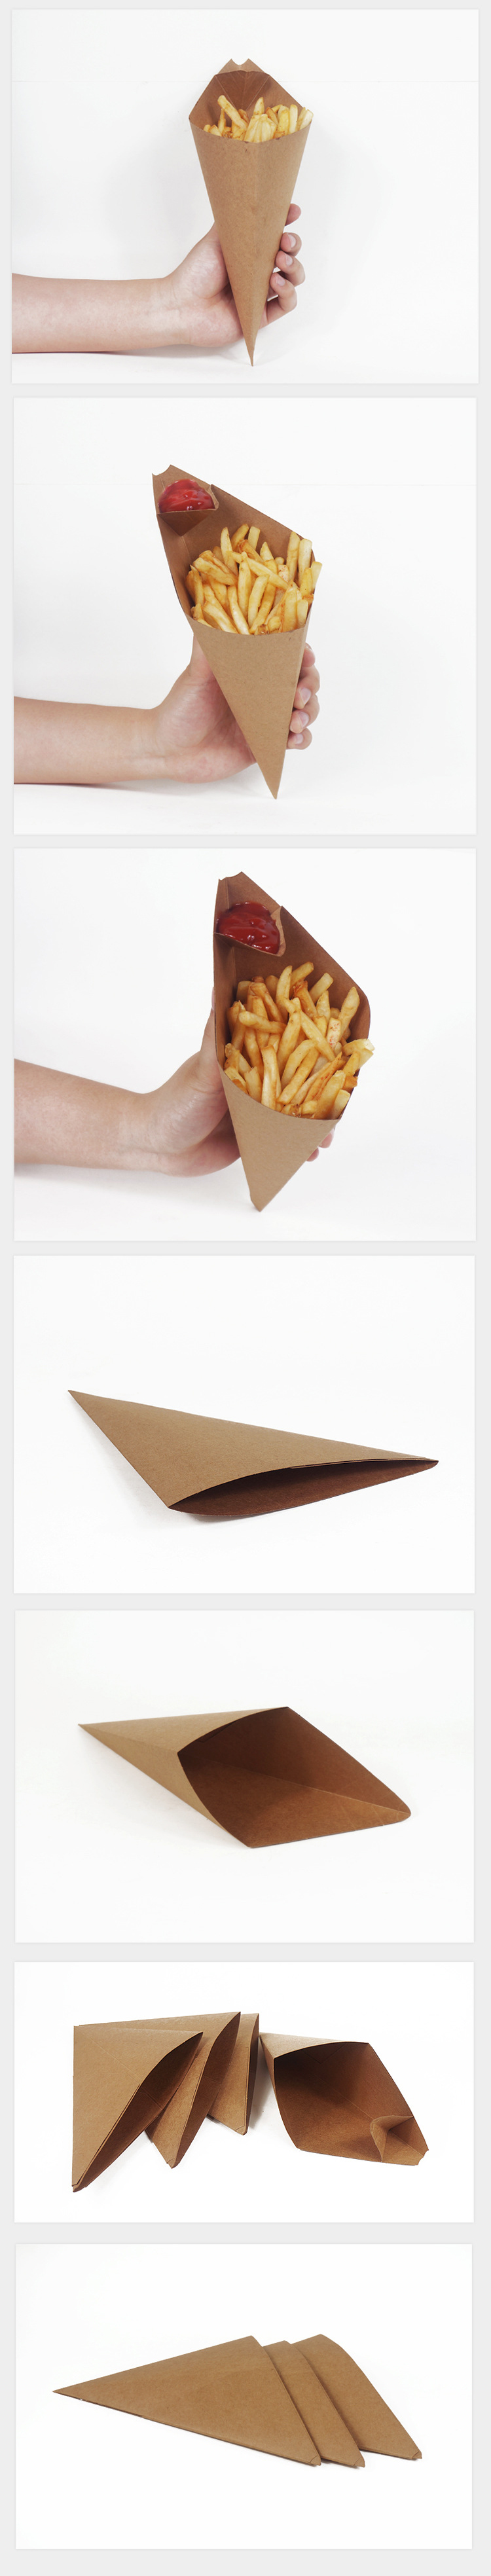 Custom Printed Food Cardboard Paper French Fries Cone Box with Sauce